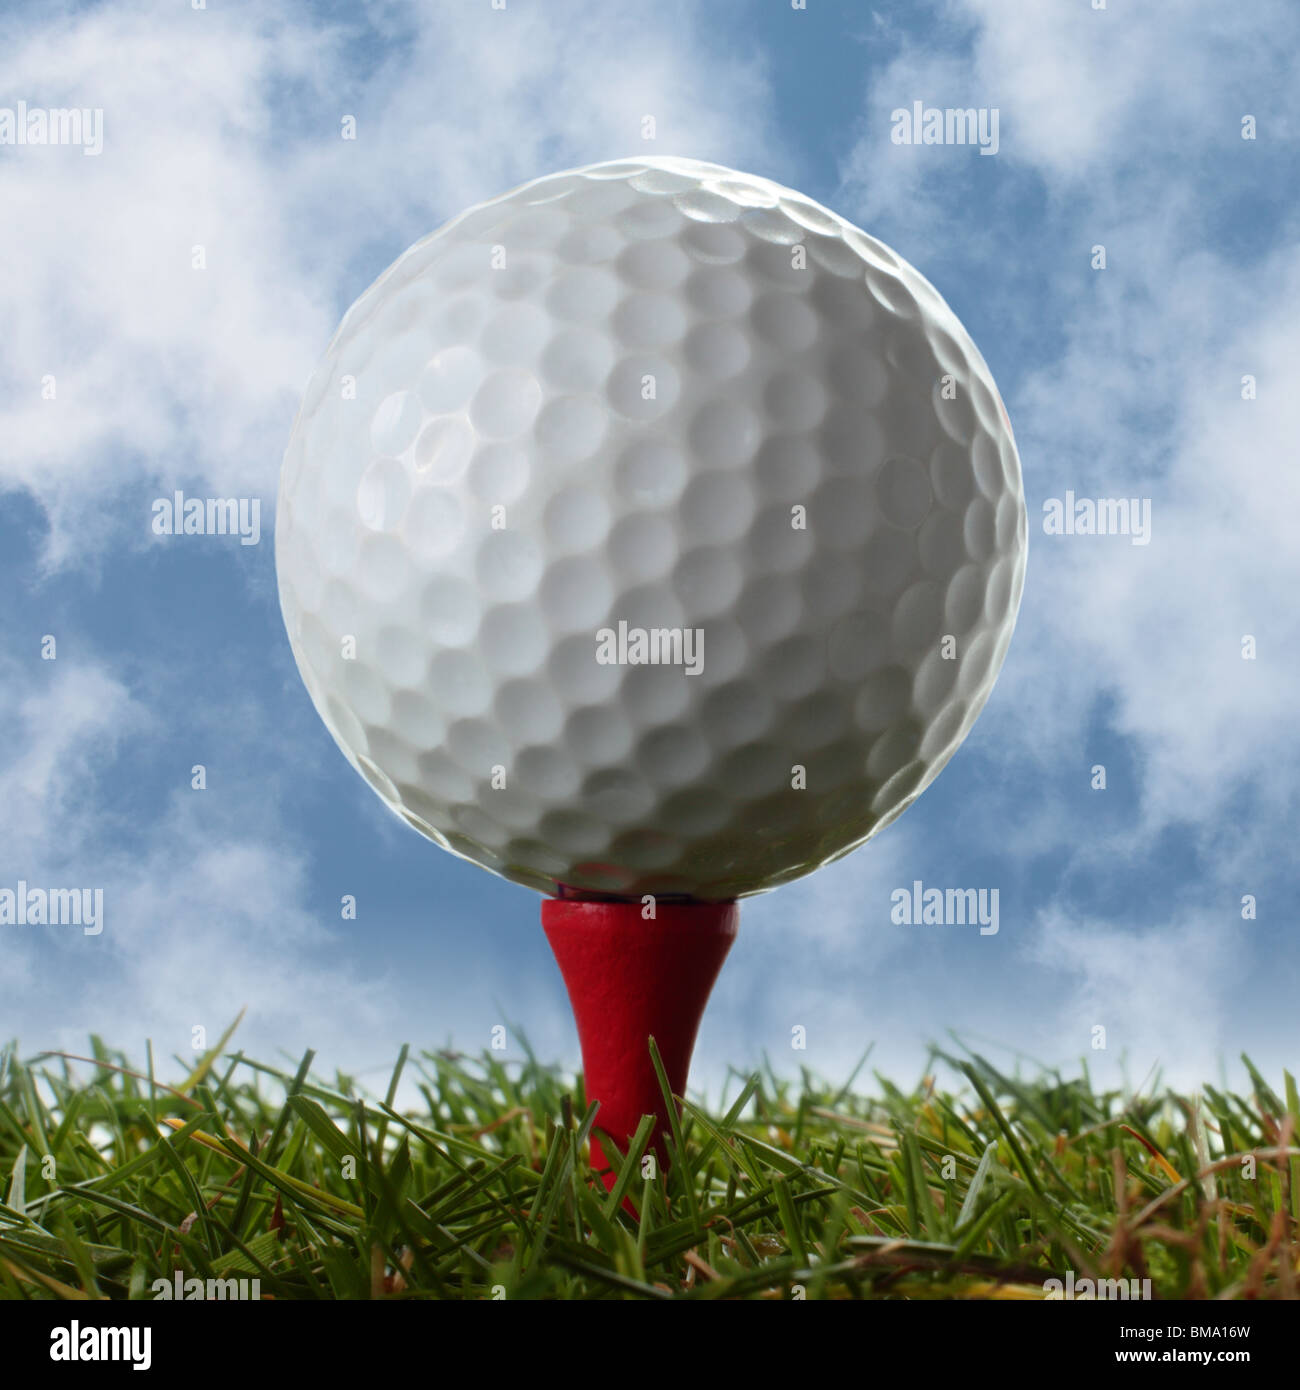 Close Up Of Golf Ball On Red Tee Above Real Grass With Cloudy Blue Stock Photo Alamy